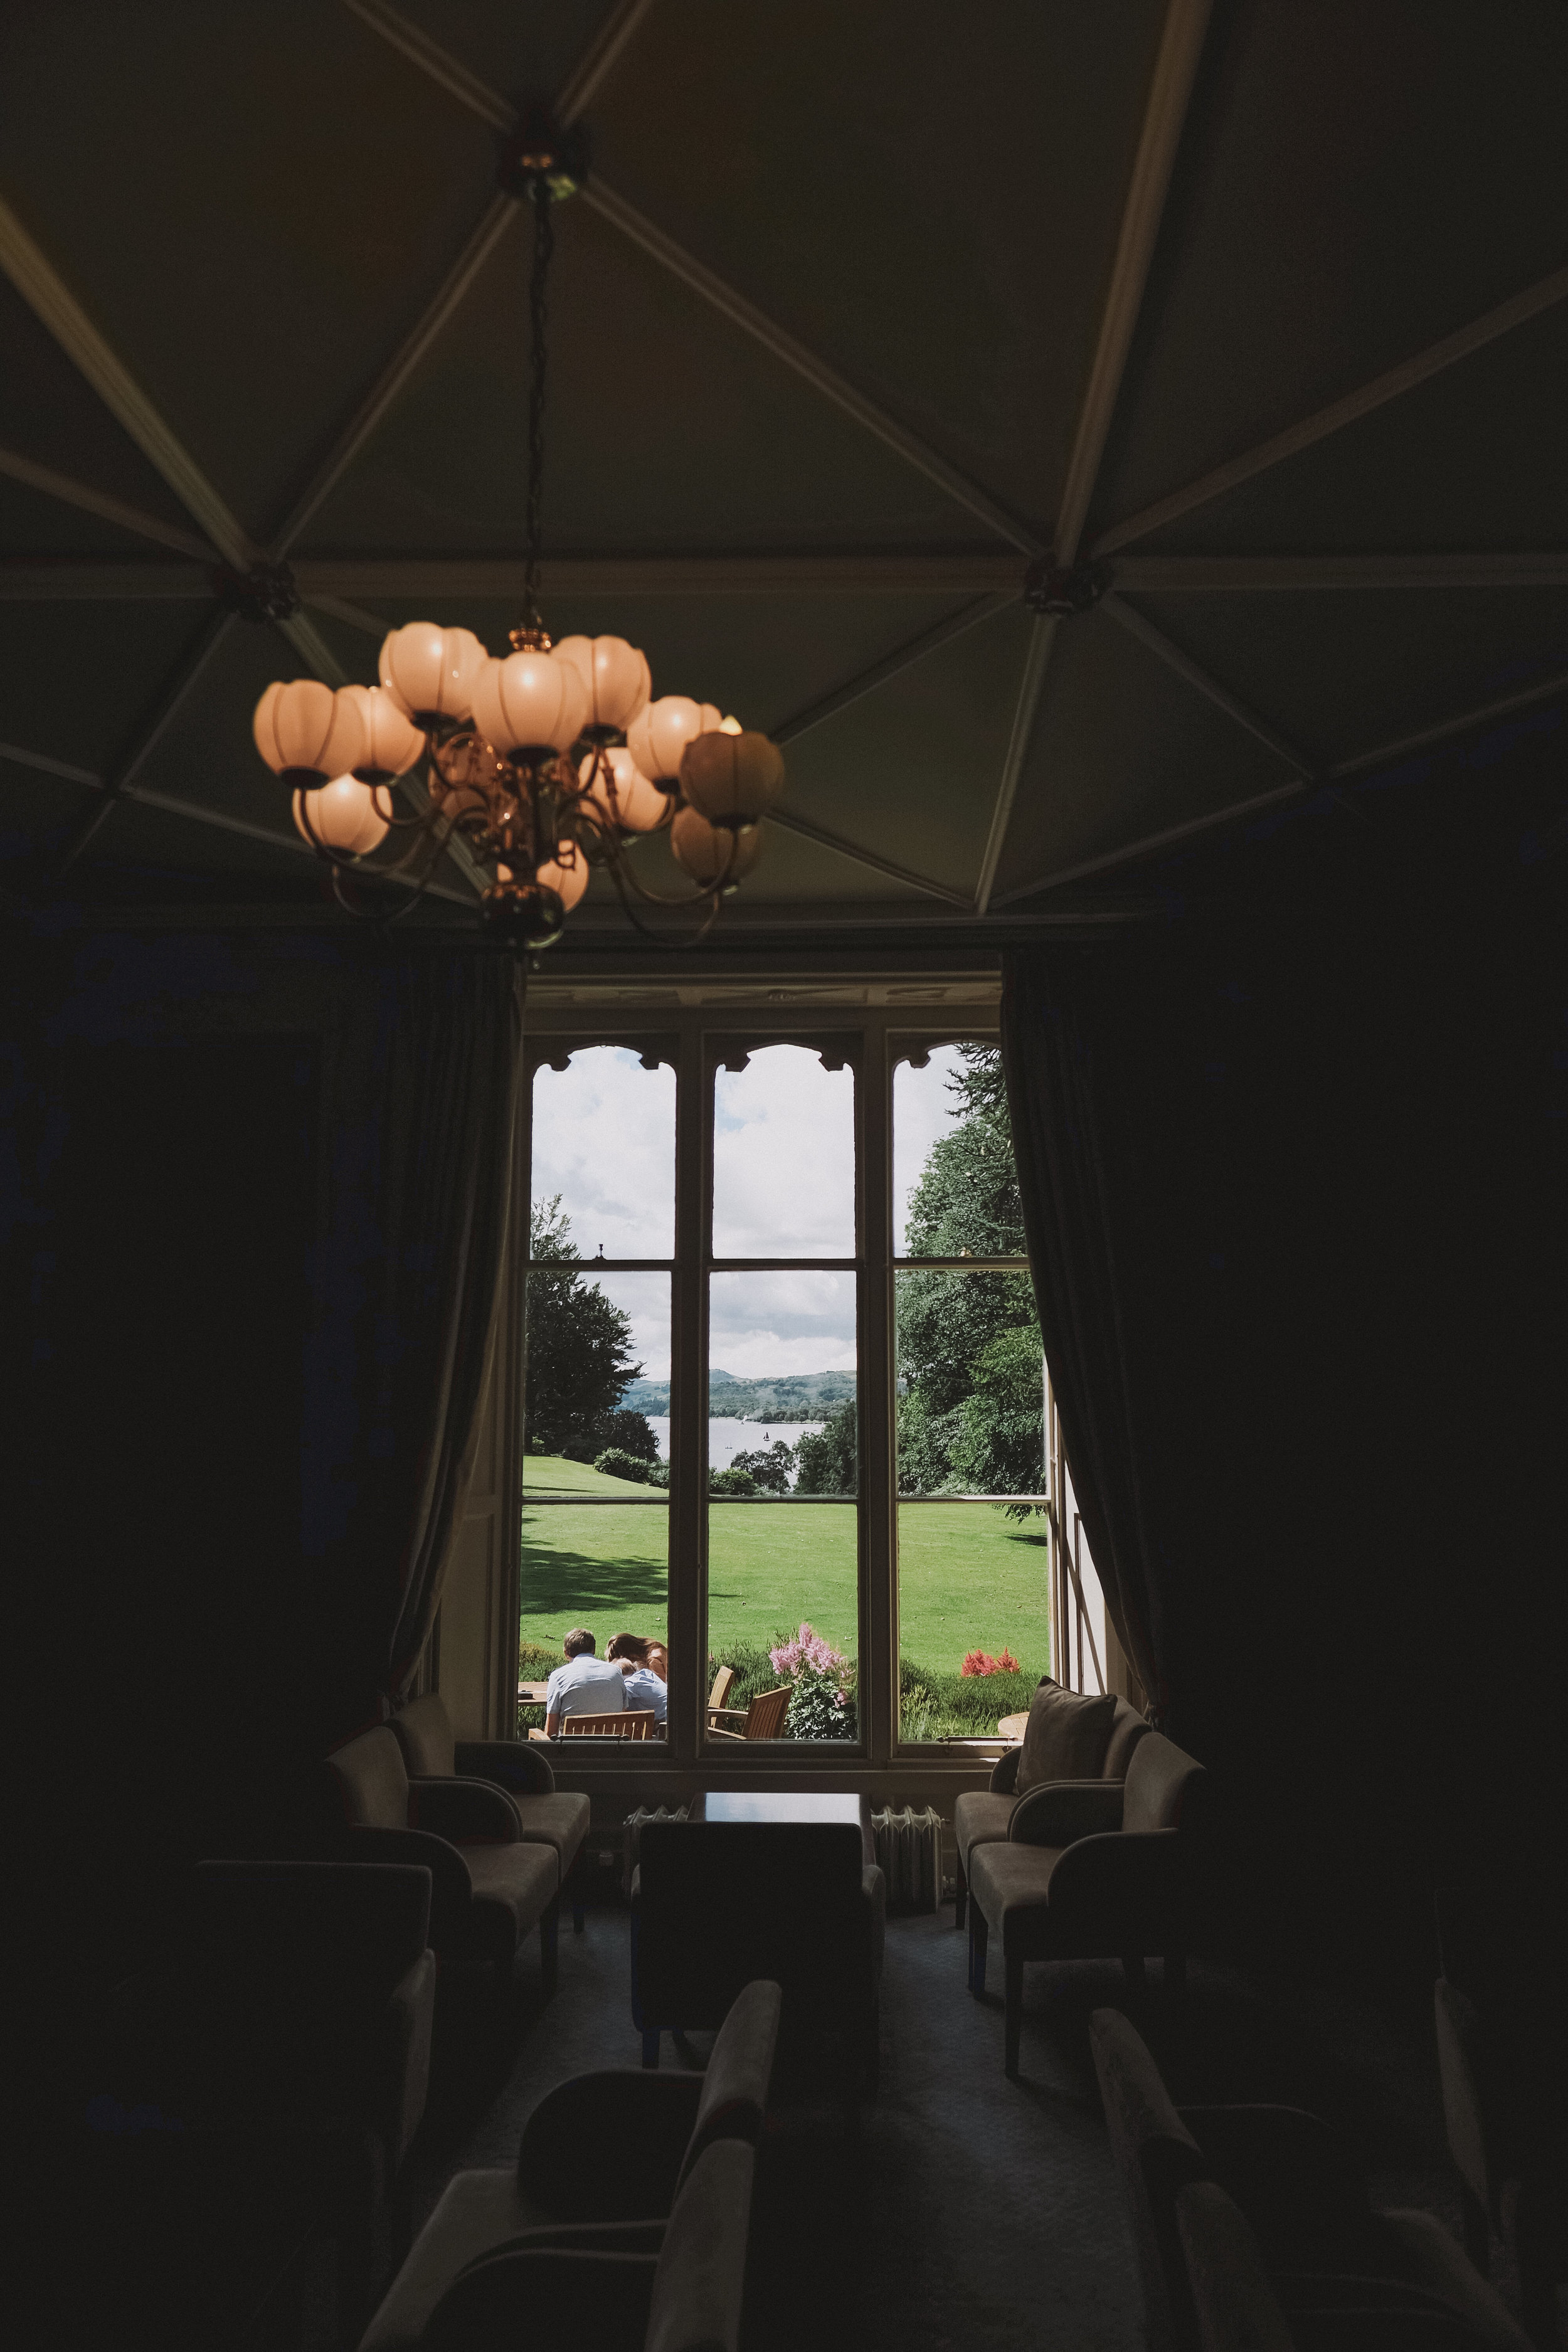 Coniston Water as seen through the window of Monk Coniston Hall at Julia and Darren's Lake District wedding by Barry Forshaw